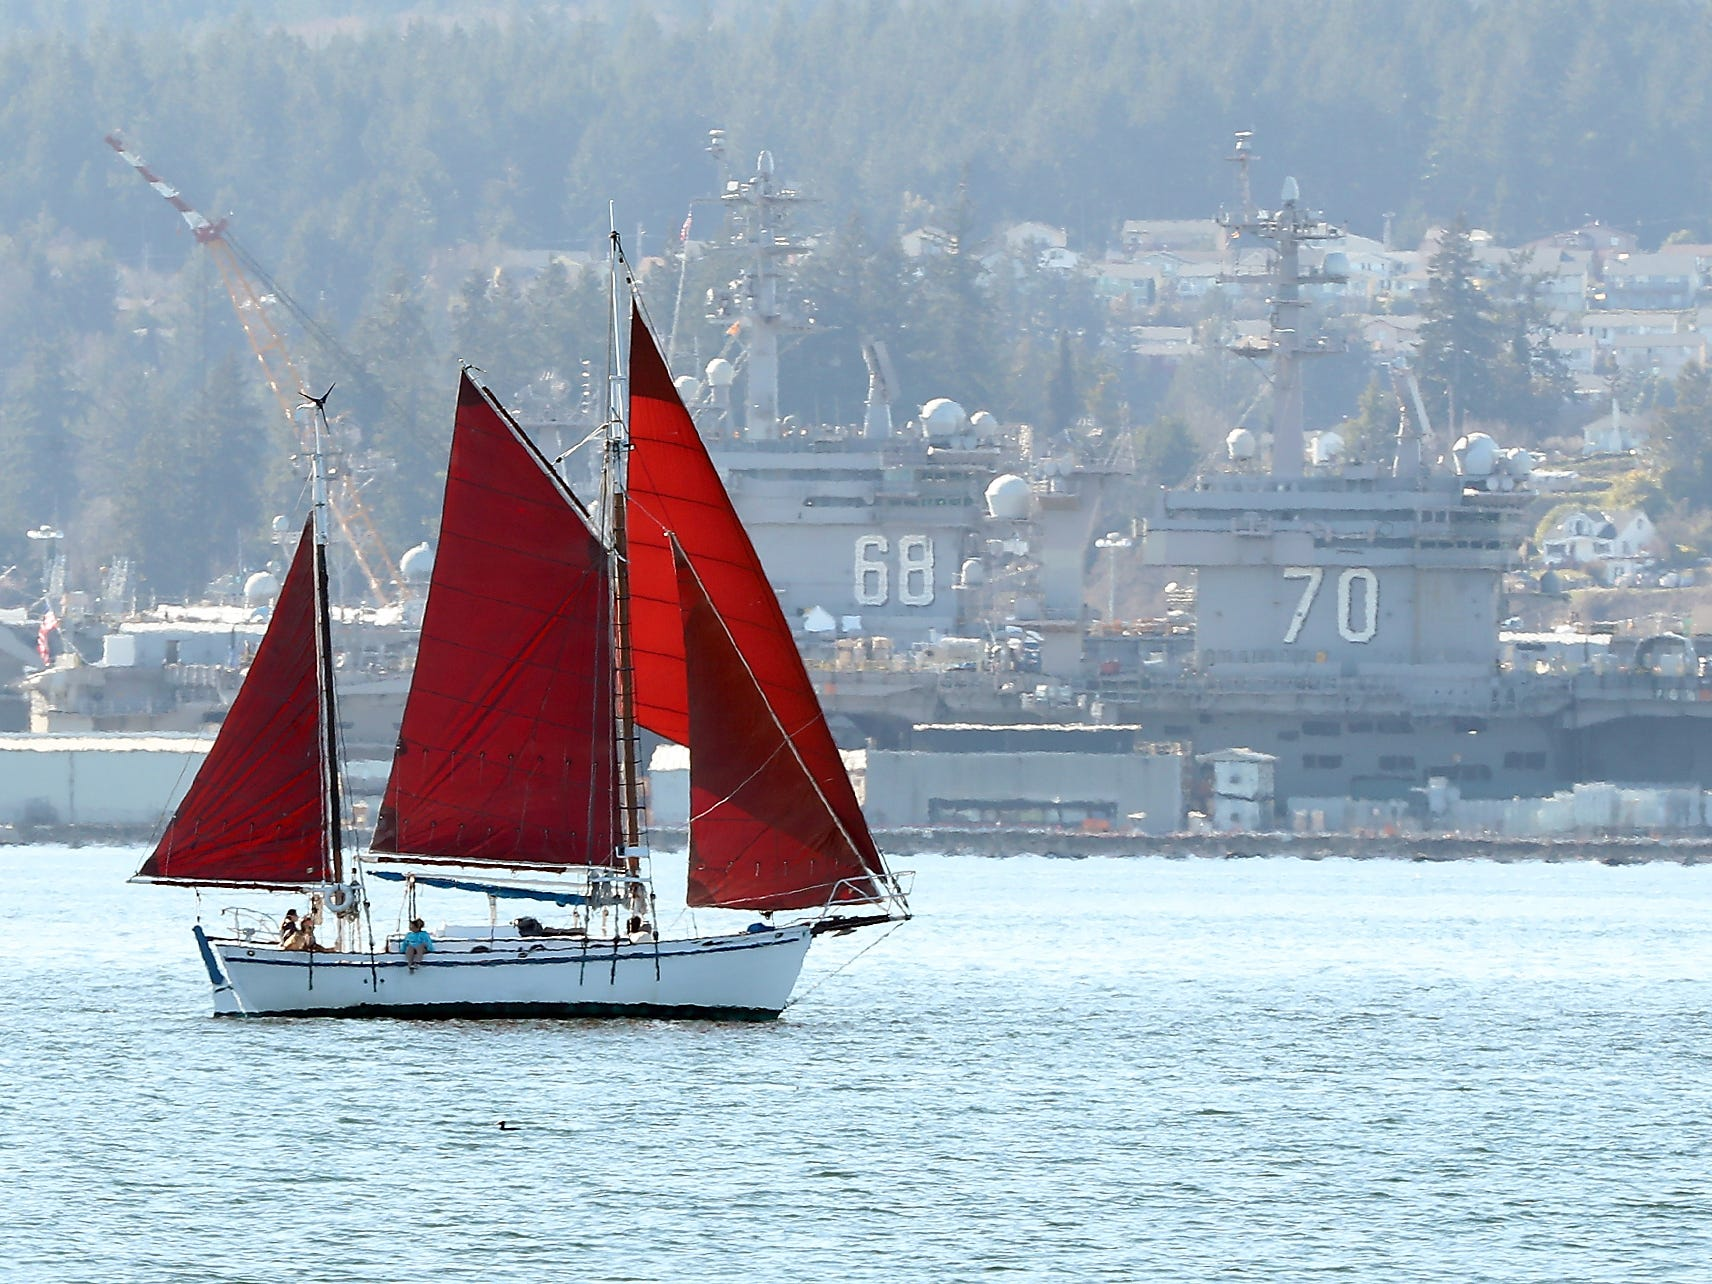 The vibrant red sails of a sailboat catch the breeze off of Naval Base Kitsap Bremerton on Monday, March 18, 2019.